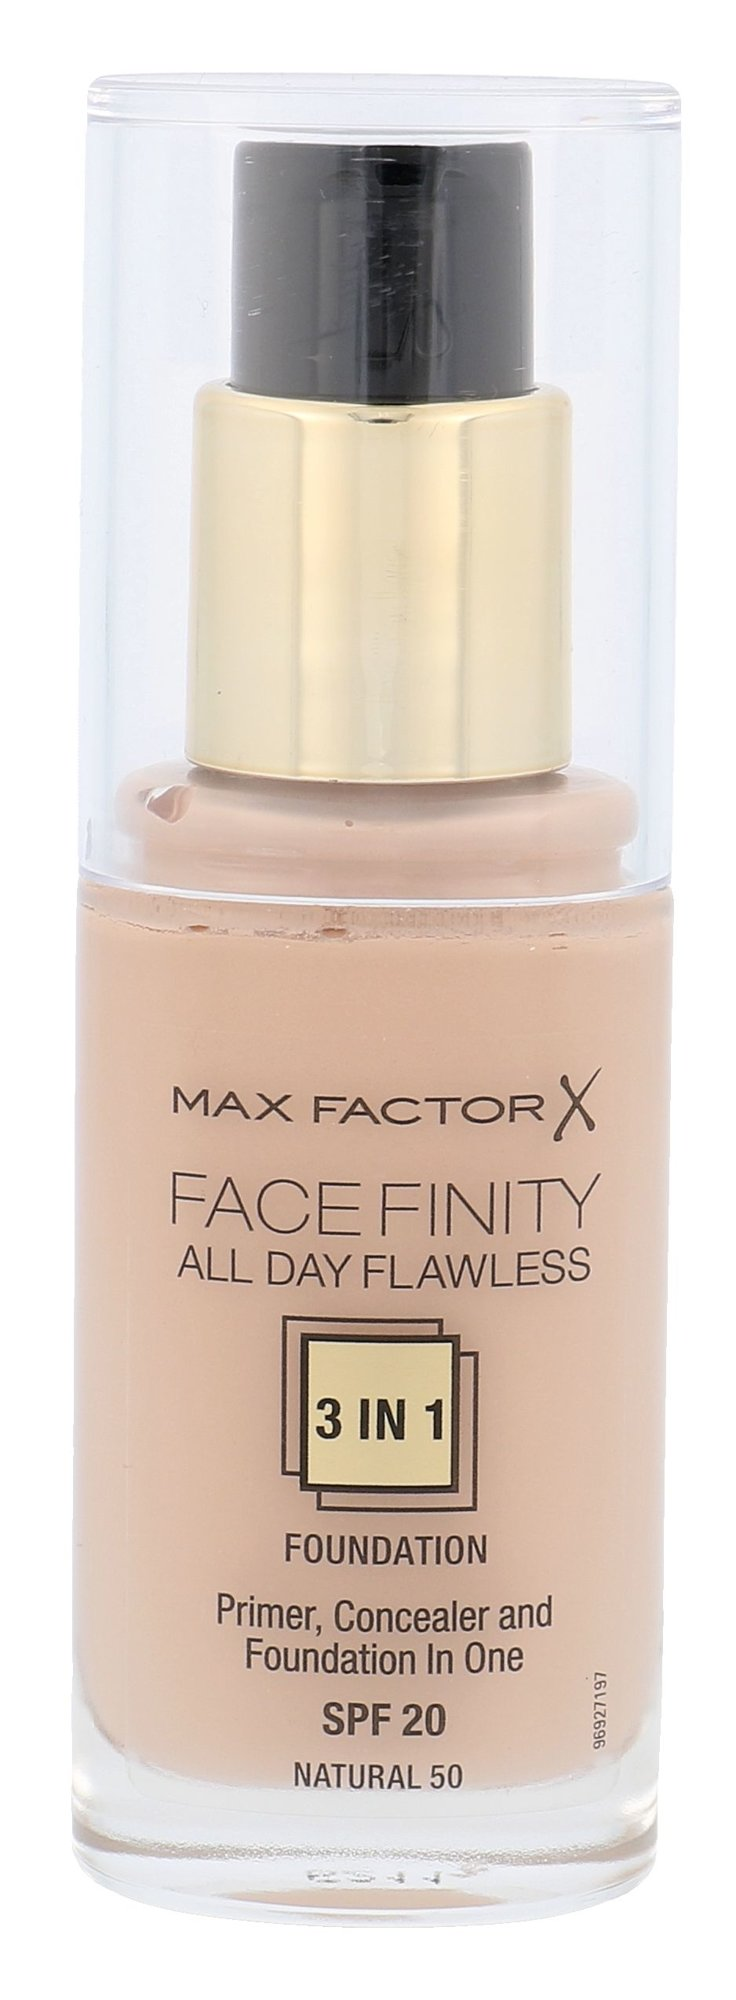 Max Factor Facefinity Cosmetic 30ml 50 Natural